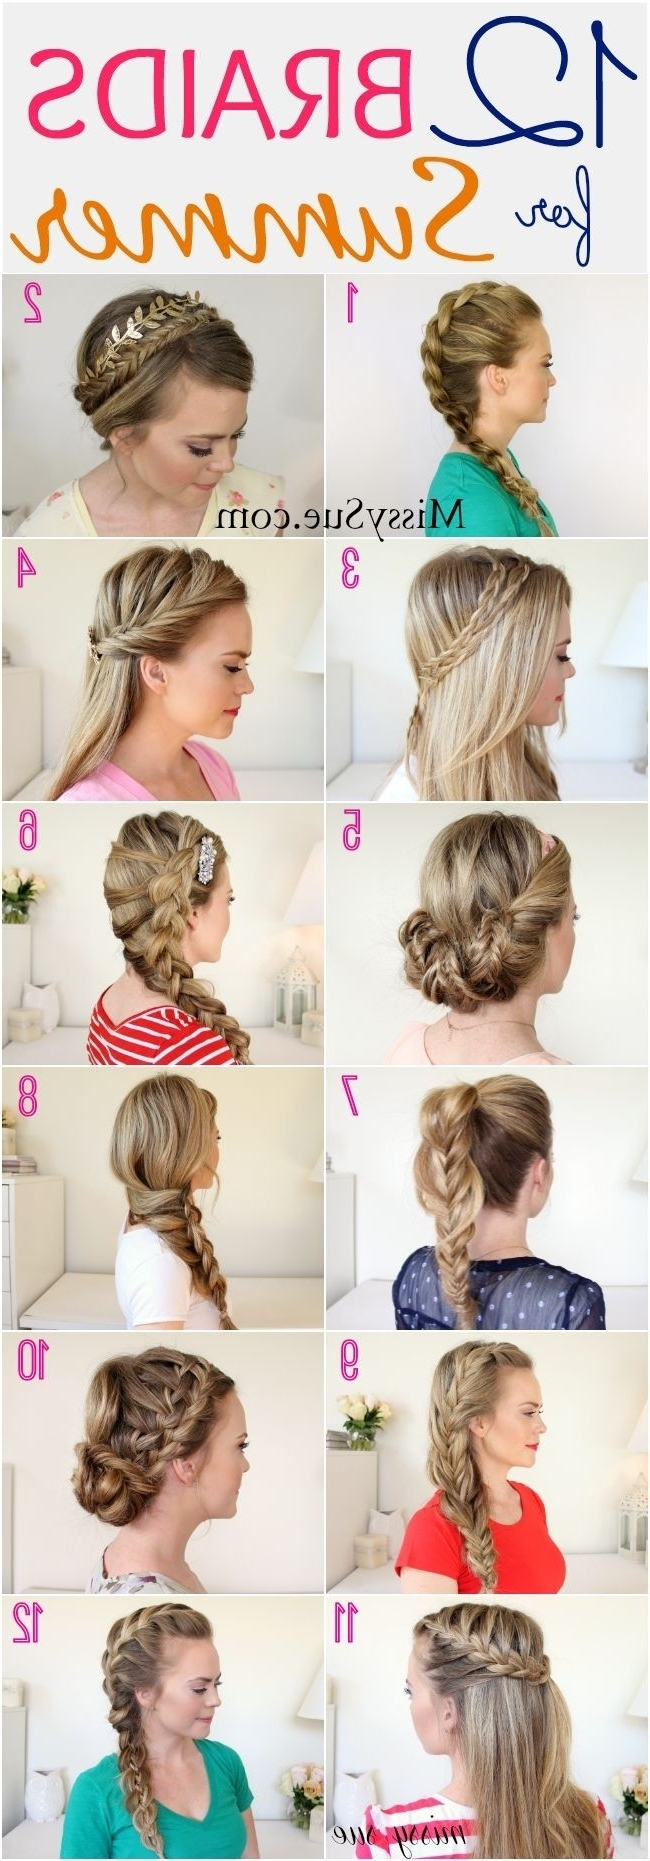 25 Chic Braided Hairstyles For Girls – Pretty Designs Throughout Fashionable Pretty Plaited Ponytails (View 4 of 20)